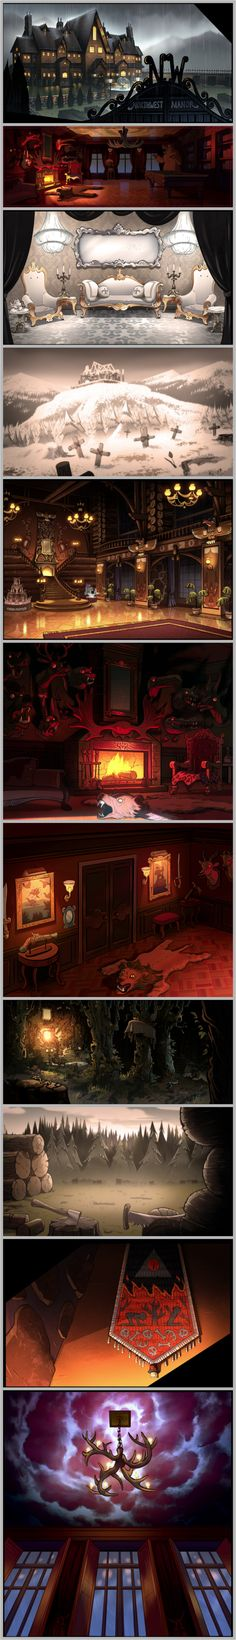 Gravity Falls -- A Tour of Northwest Manor. Art Direction: Ian Worrel. Designed by: Alex Chechik, Janine Chang, Matthias Bauer, Sun Jae Lee. Paintings by: Jeffrey Thompson, Matthias Bauer, Paul Tsui, Samantha Kallis, Manddy Wyckens